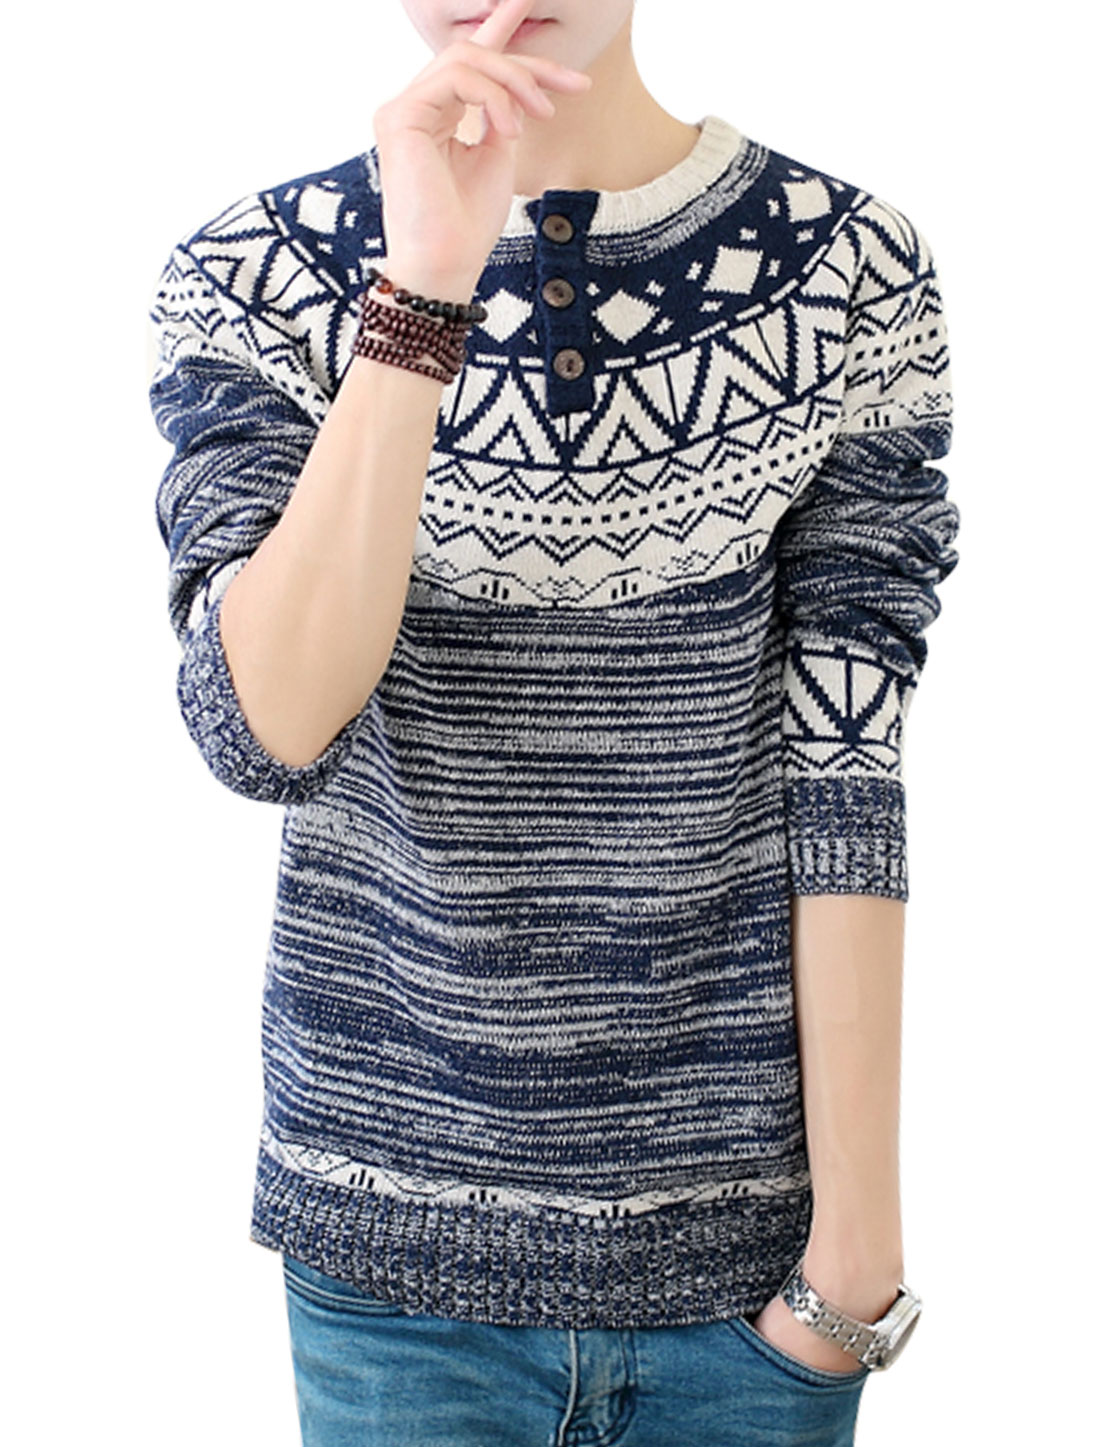 Long Raglan Sleeves Round Neck Pullover Navy Blue Sweater for Man S